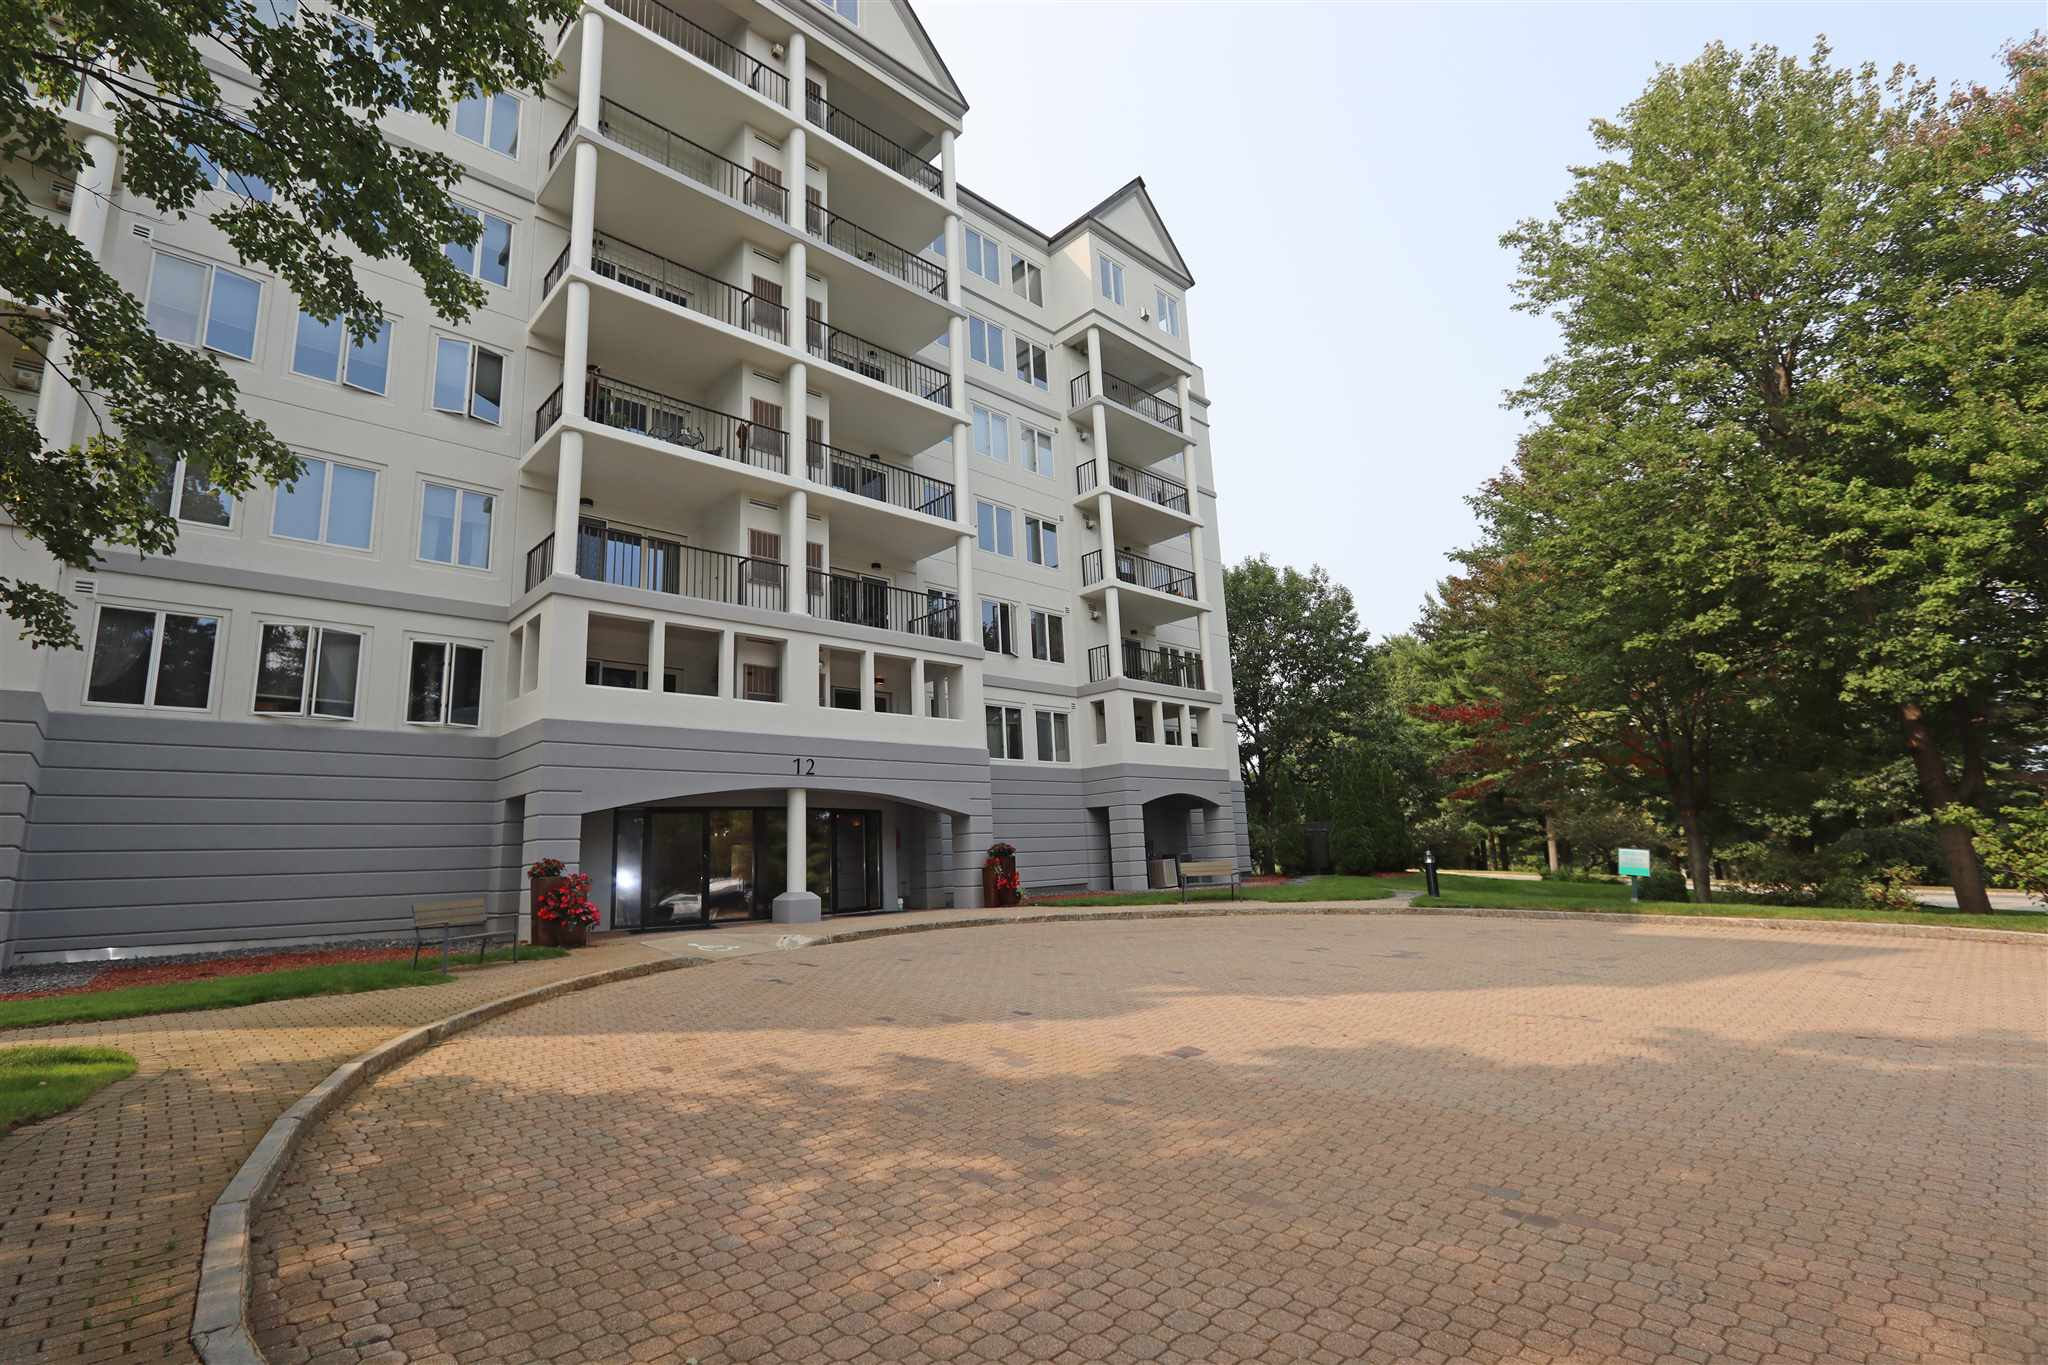 MLS 4829827: 12-104 Mt. Laurels Drive-Unit 104, Nashua NH